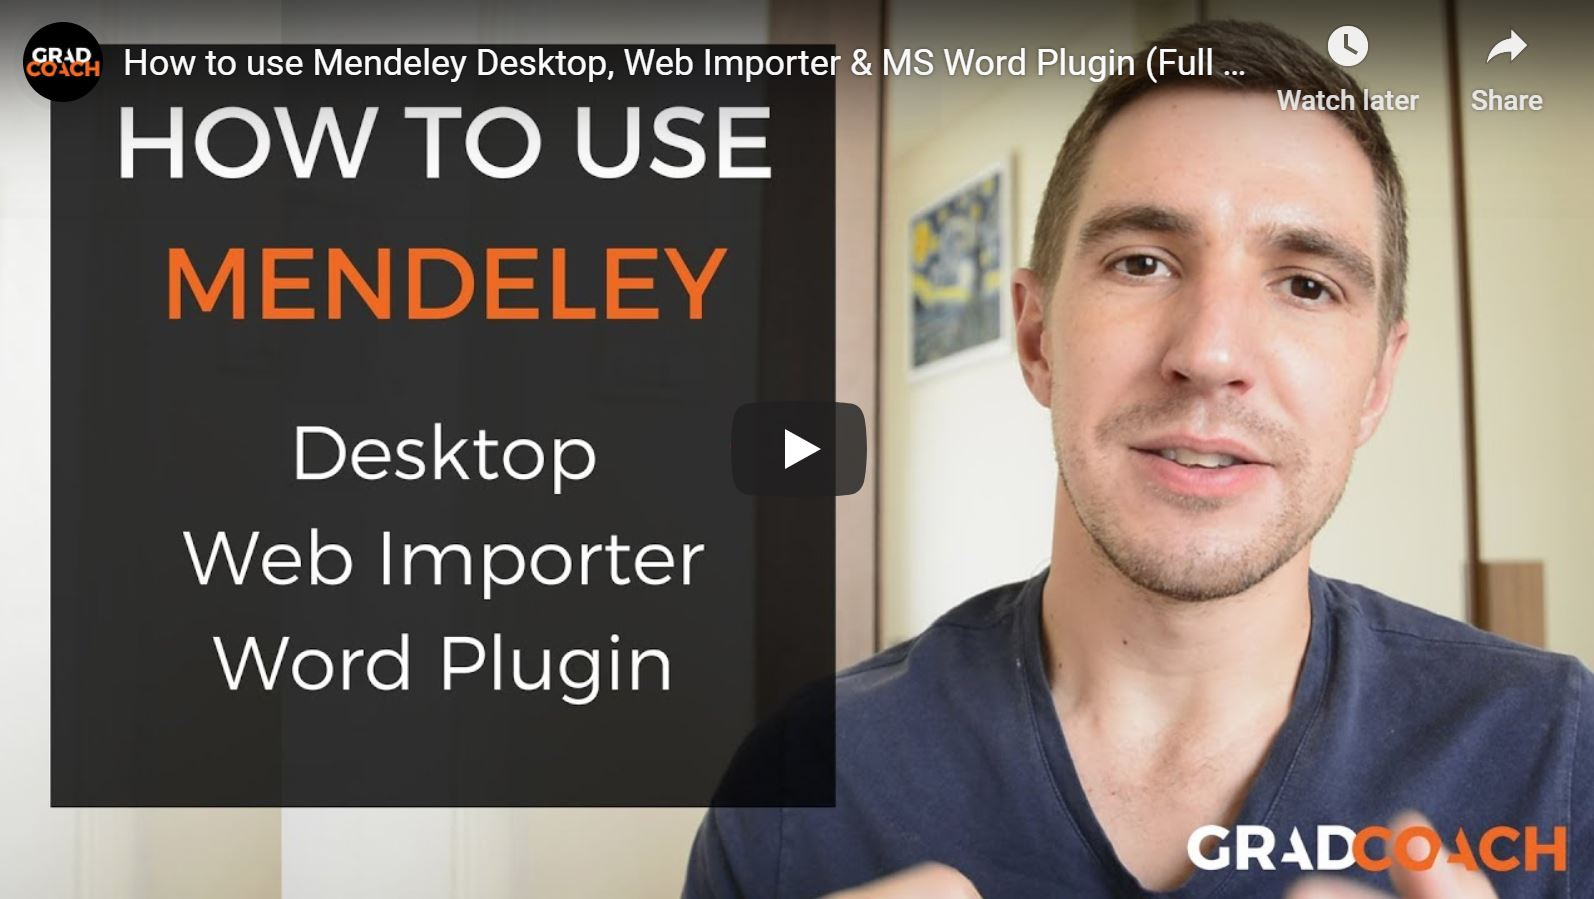 How To Use Mendeley Desktop, Web Importer & The MS Word plugin.